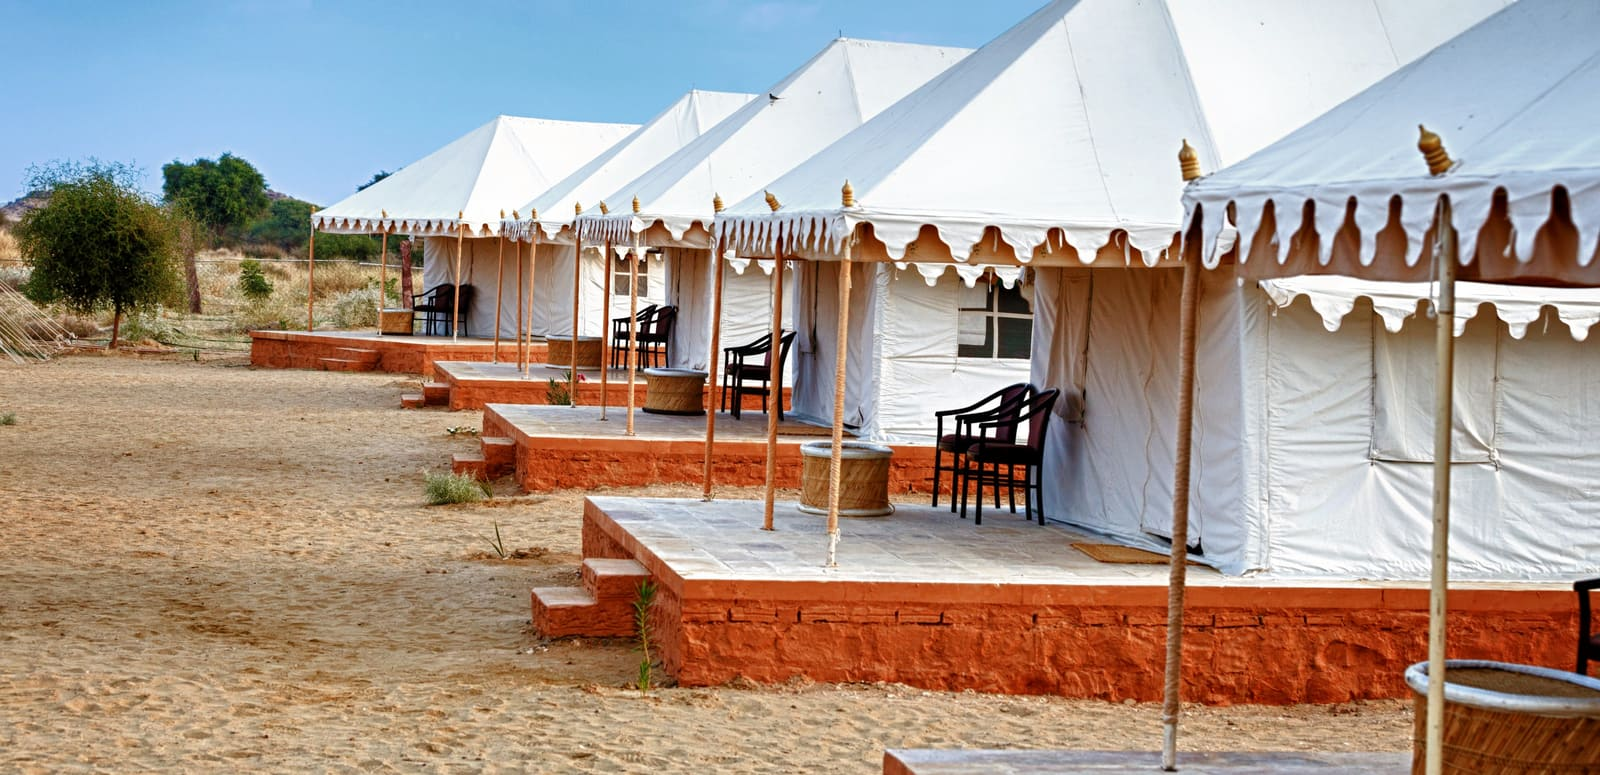 313756a143 51 BEST Jaisalmer Deserts Camps - 2019 (with 3200+ Reviews)